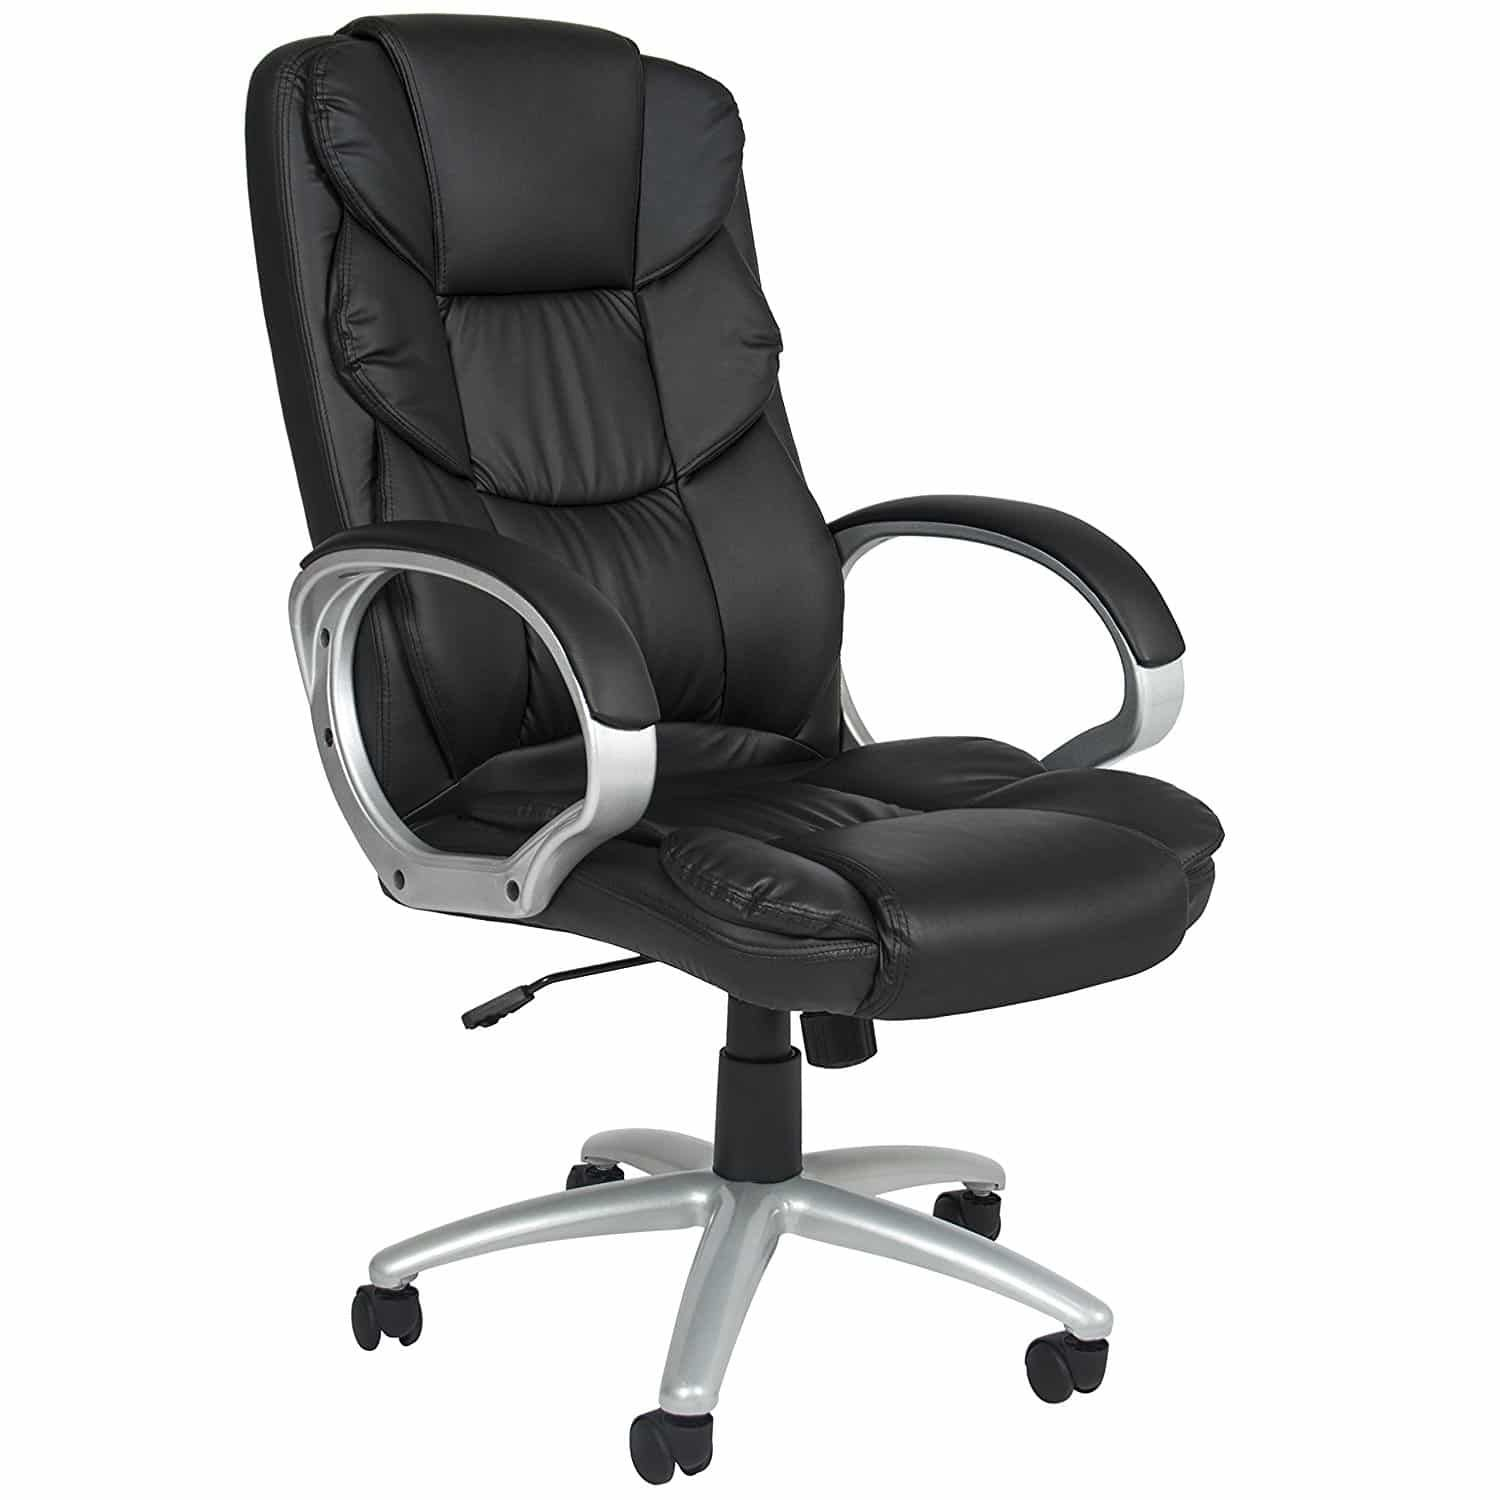 Top 10 Most Comfortable Office Chairs In 2020 Most Comfortable Office Chair Black Office Chair High Back Office Chair